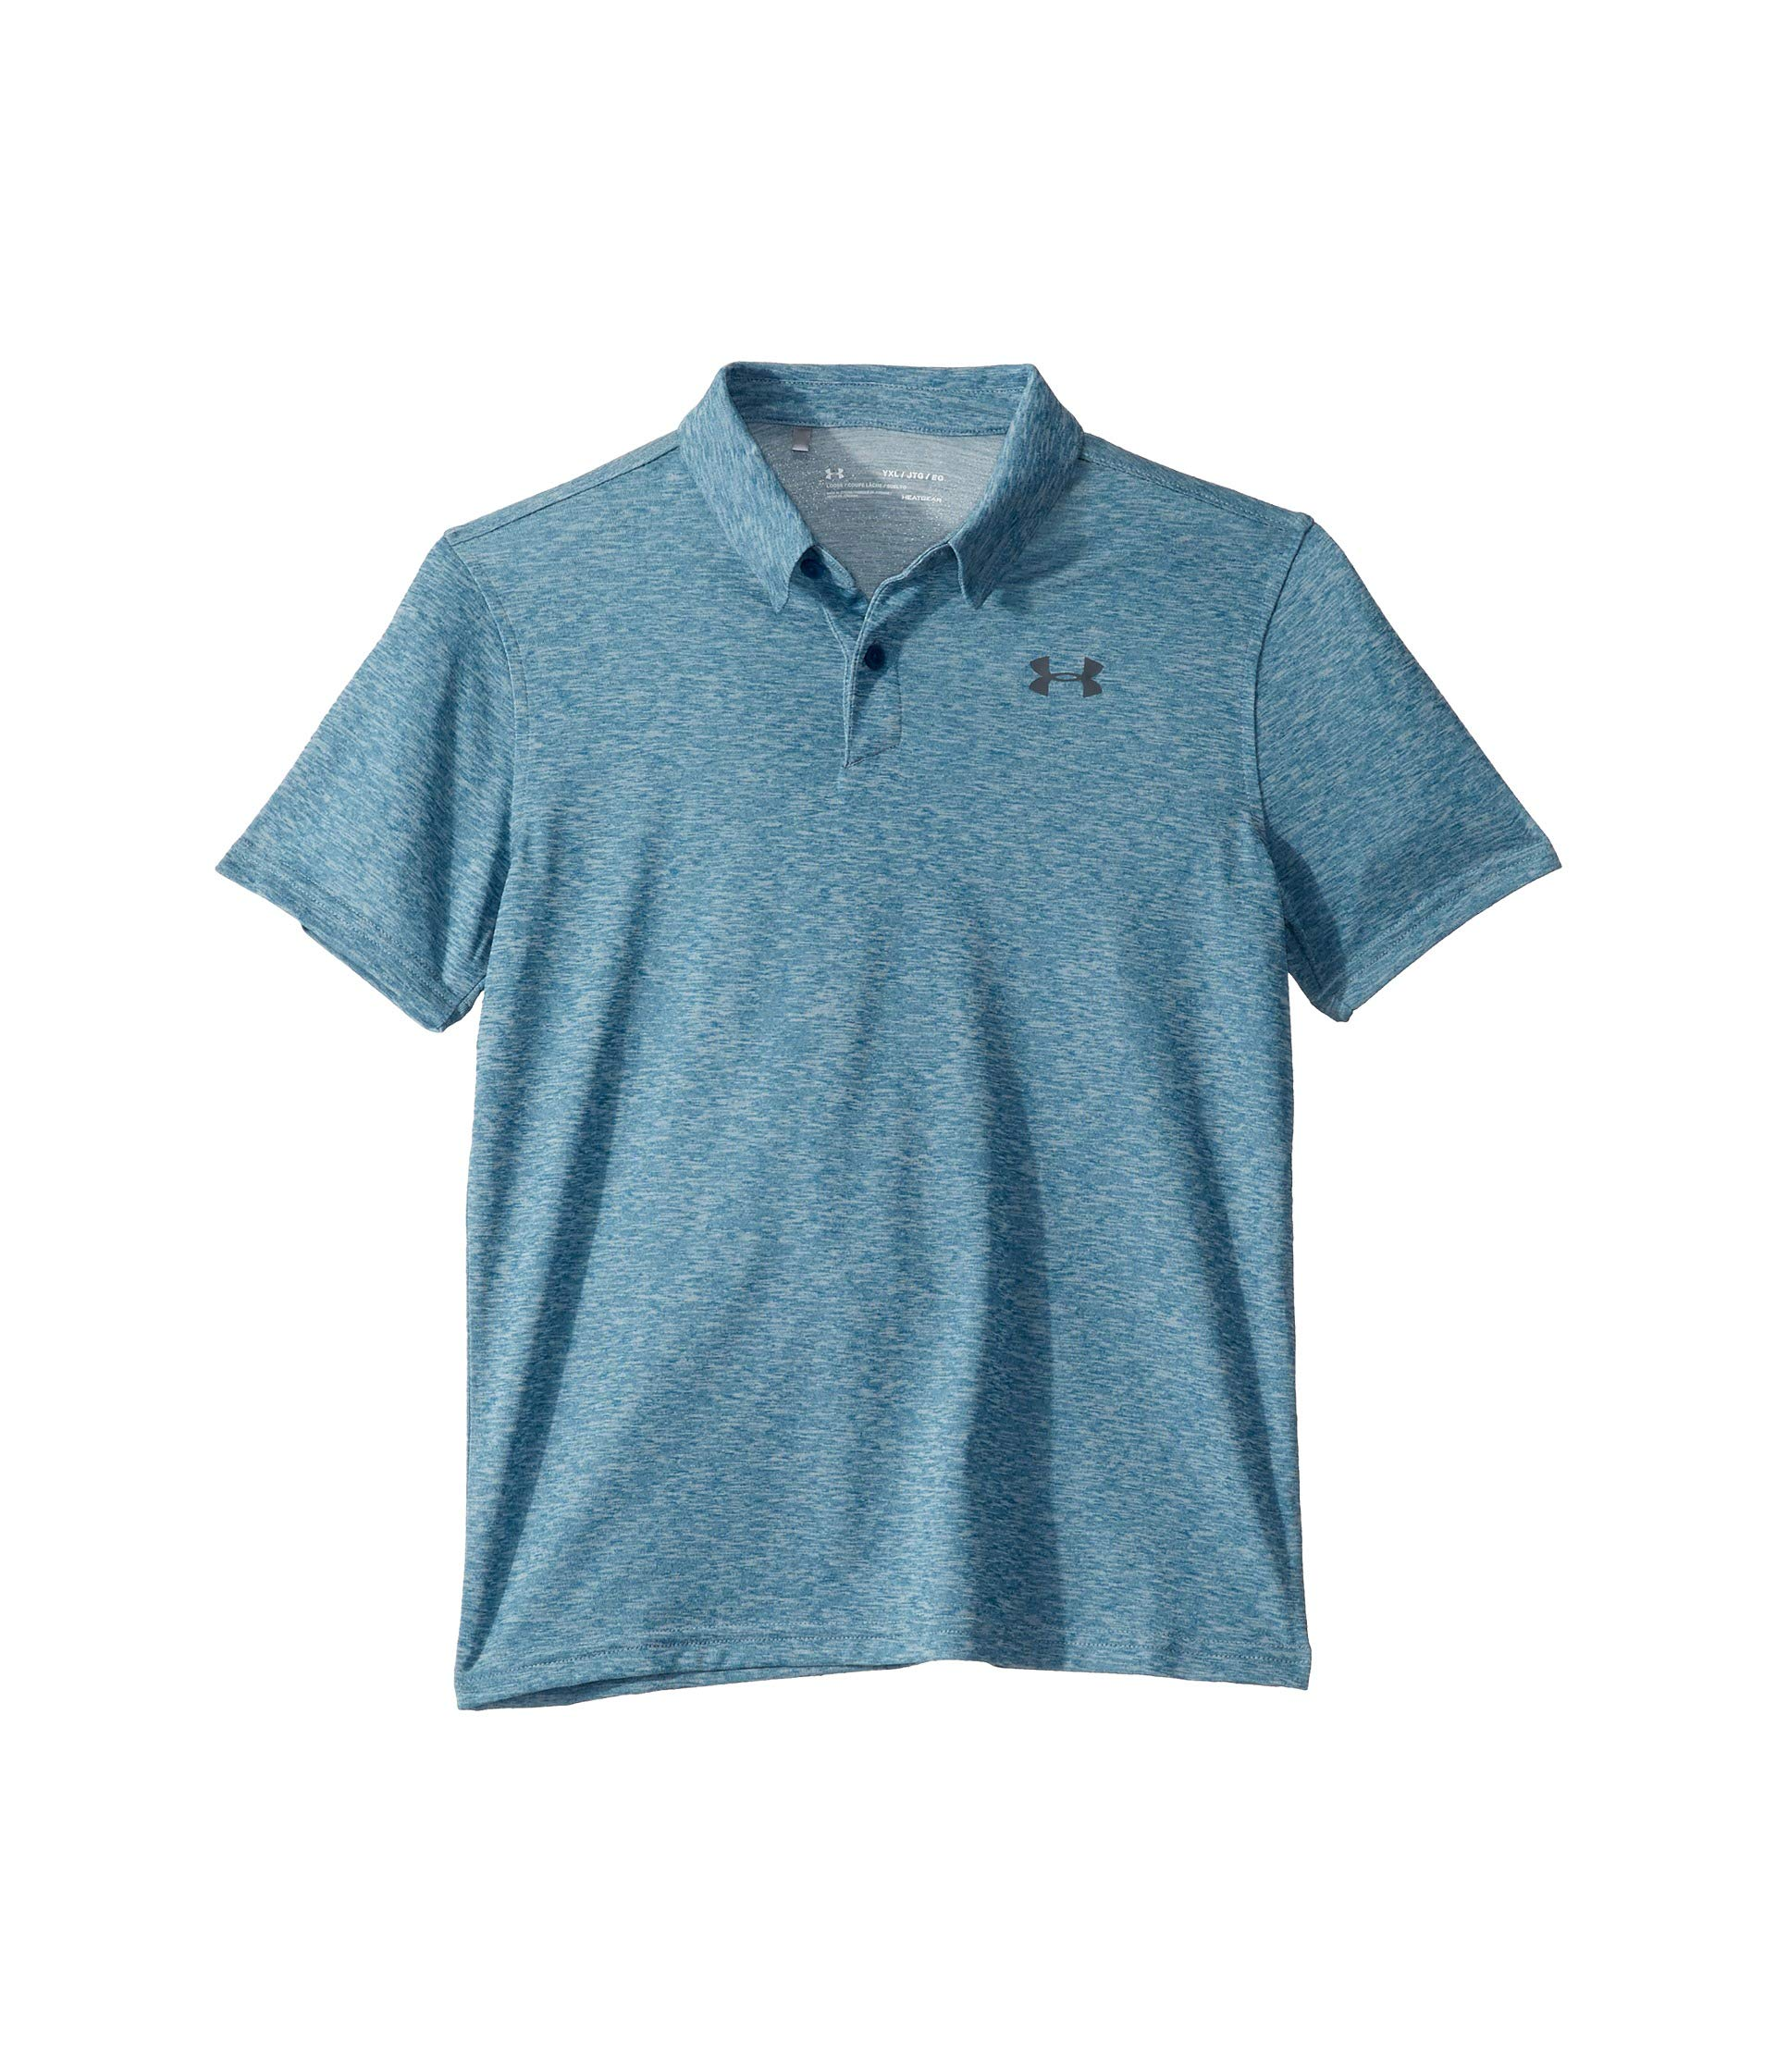 Under Armour Kids Boy's Threadborne/TBD Polo (Big Kids) Teal Vibe Light Heather/Teal Vibe Light Heather/Pitch Gray Large by Under Armour